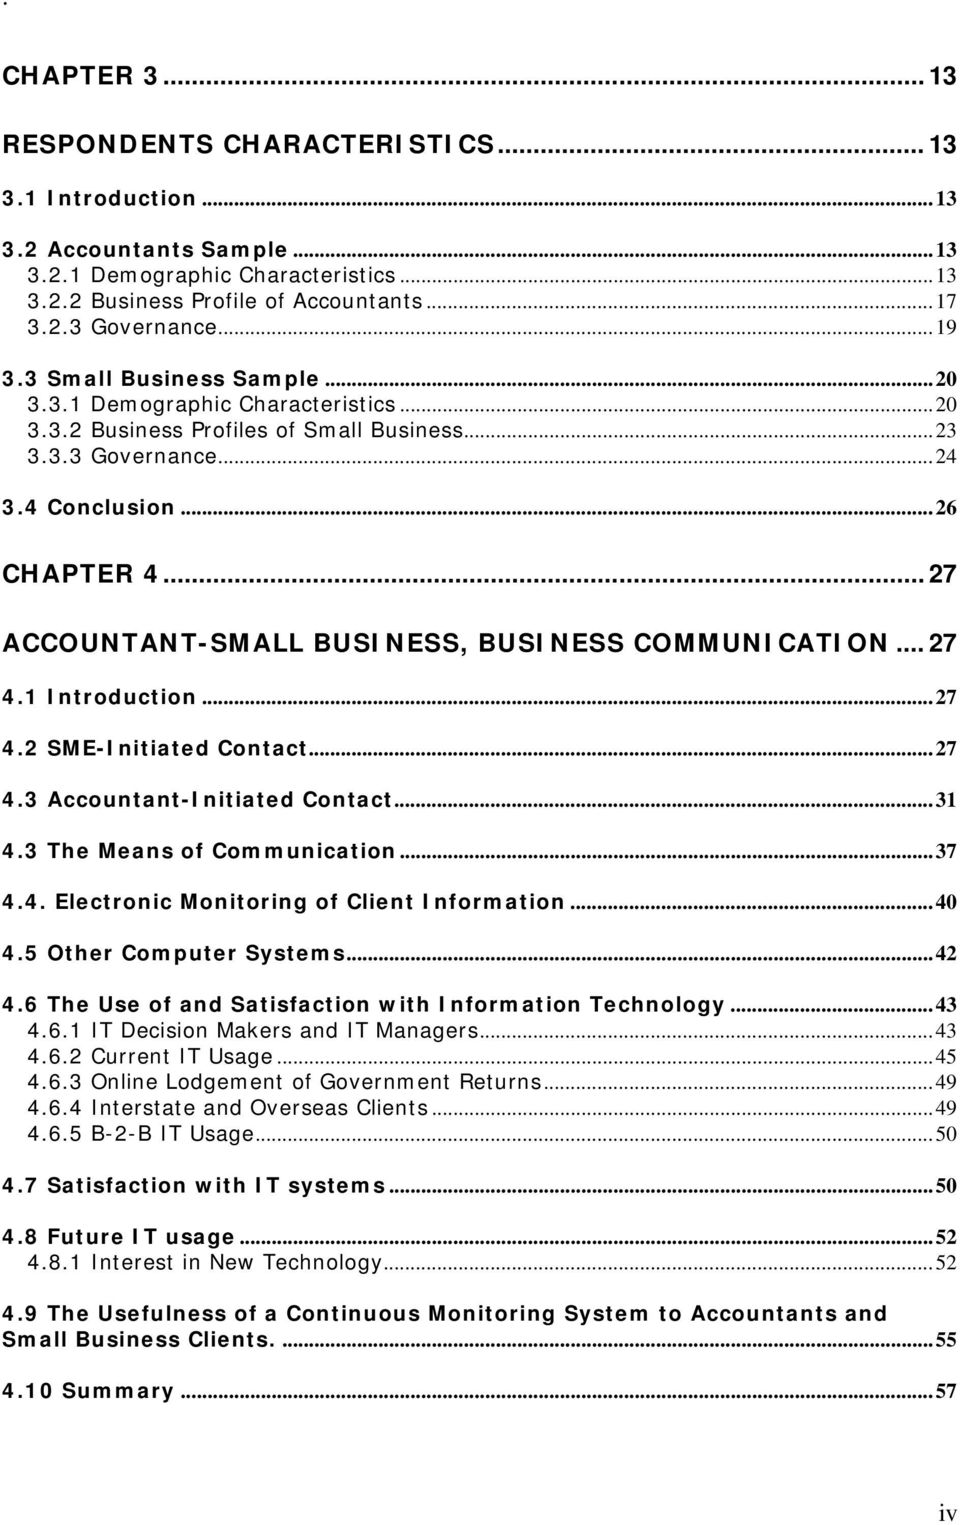 .. 27 ACCOUNTANT-SMALL BUSINESS, BUSINESS COMMUNICATION... 27 4.1 Introduction...27 4.2 SME-Initiated Contact...27 4.3 Accountant-Initiated Contact...31 4.3 The Means of Communication...37 4.4. Electronic Monitoring of Client Information.